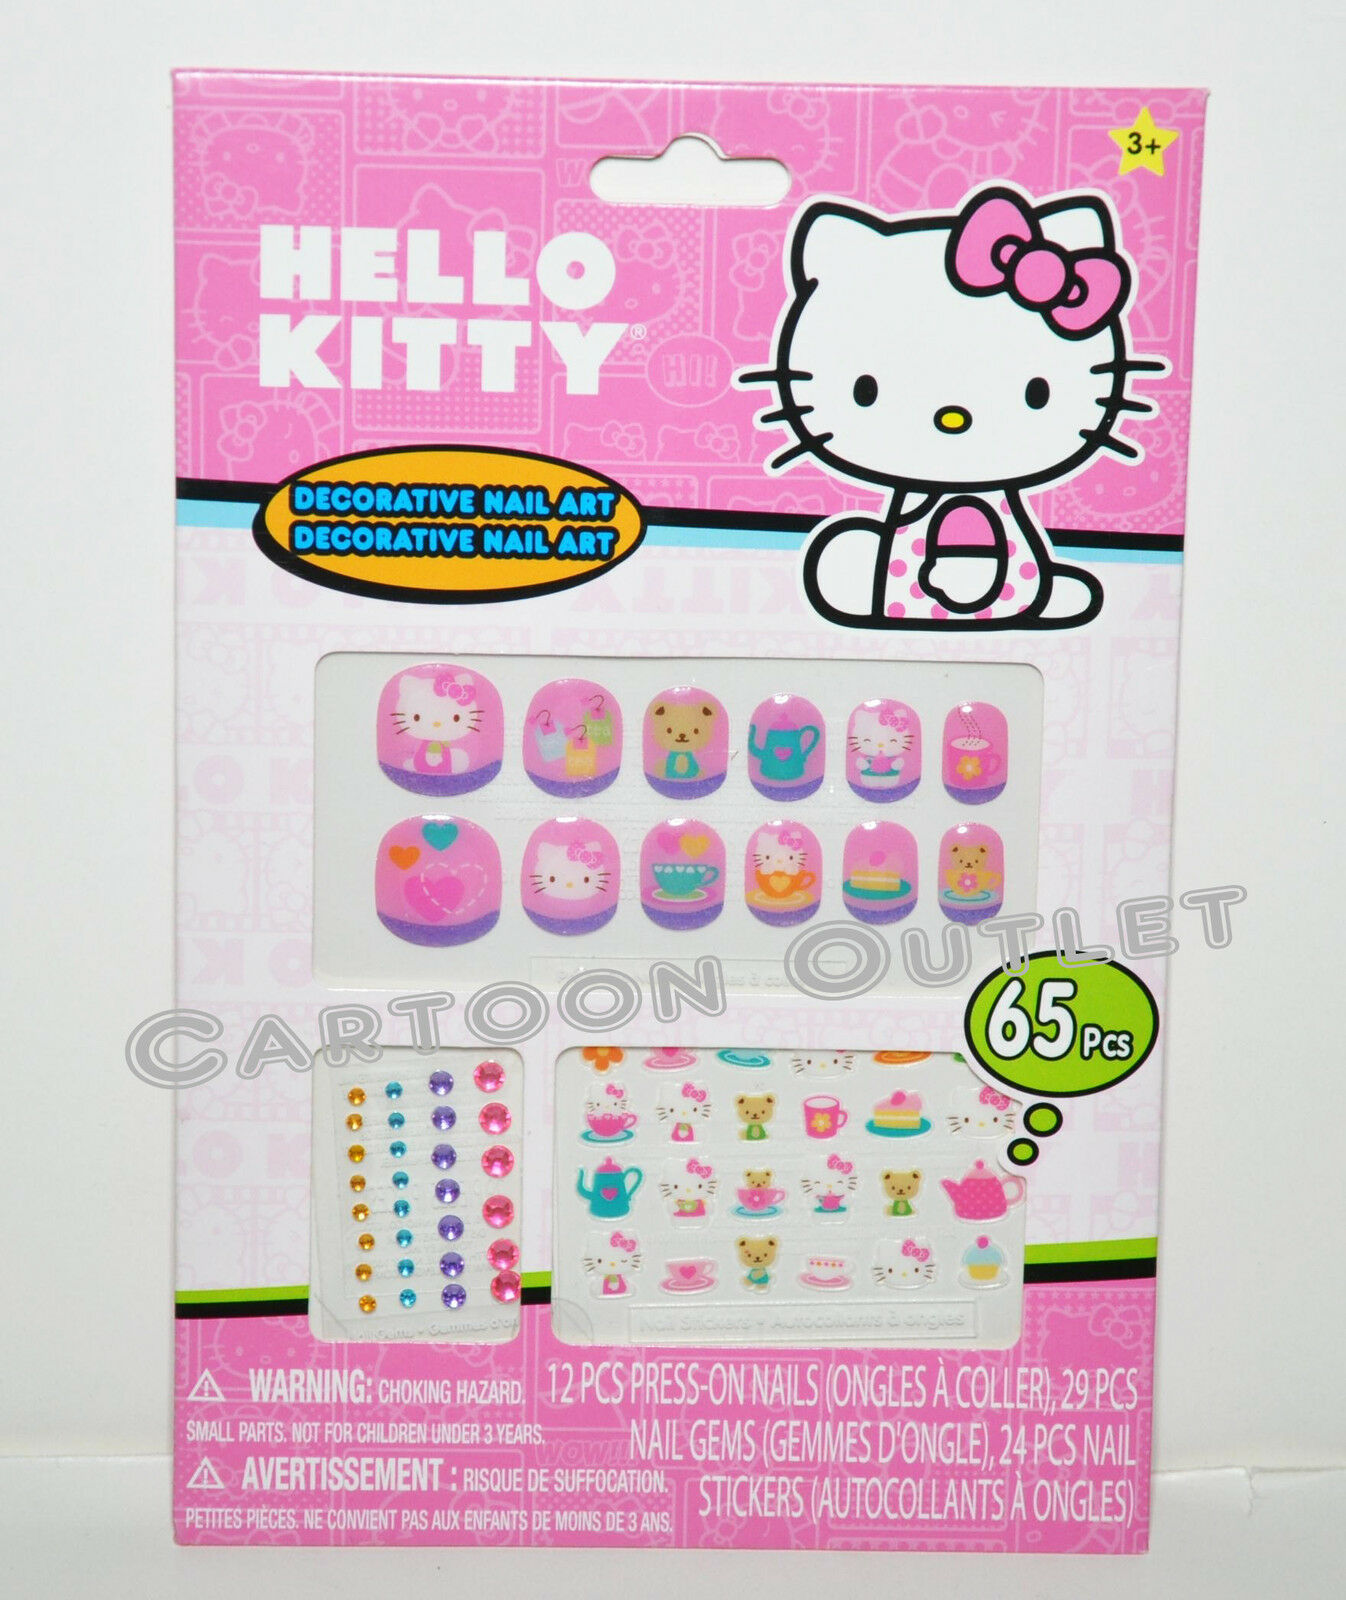 Sanrio Hello Kitty Nail Art 65 Pcs Press On Nails Nail Gems Nail